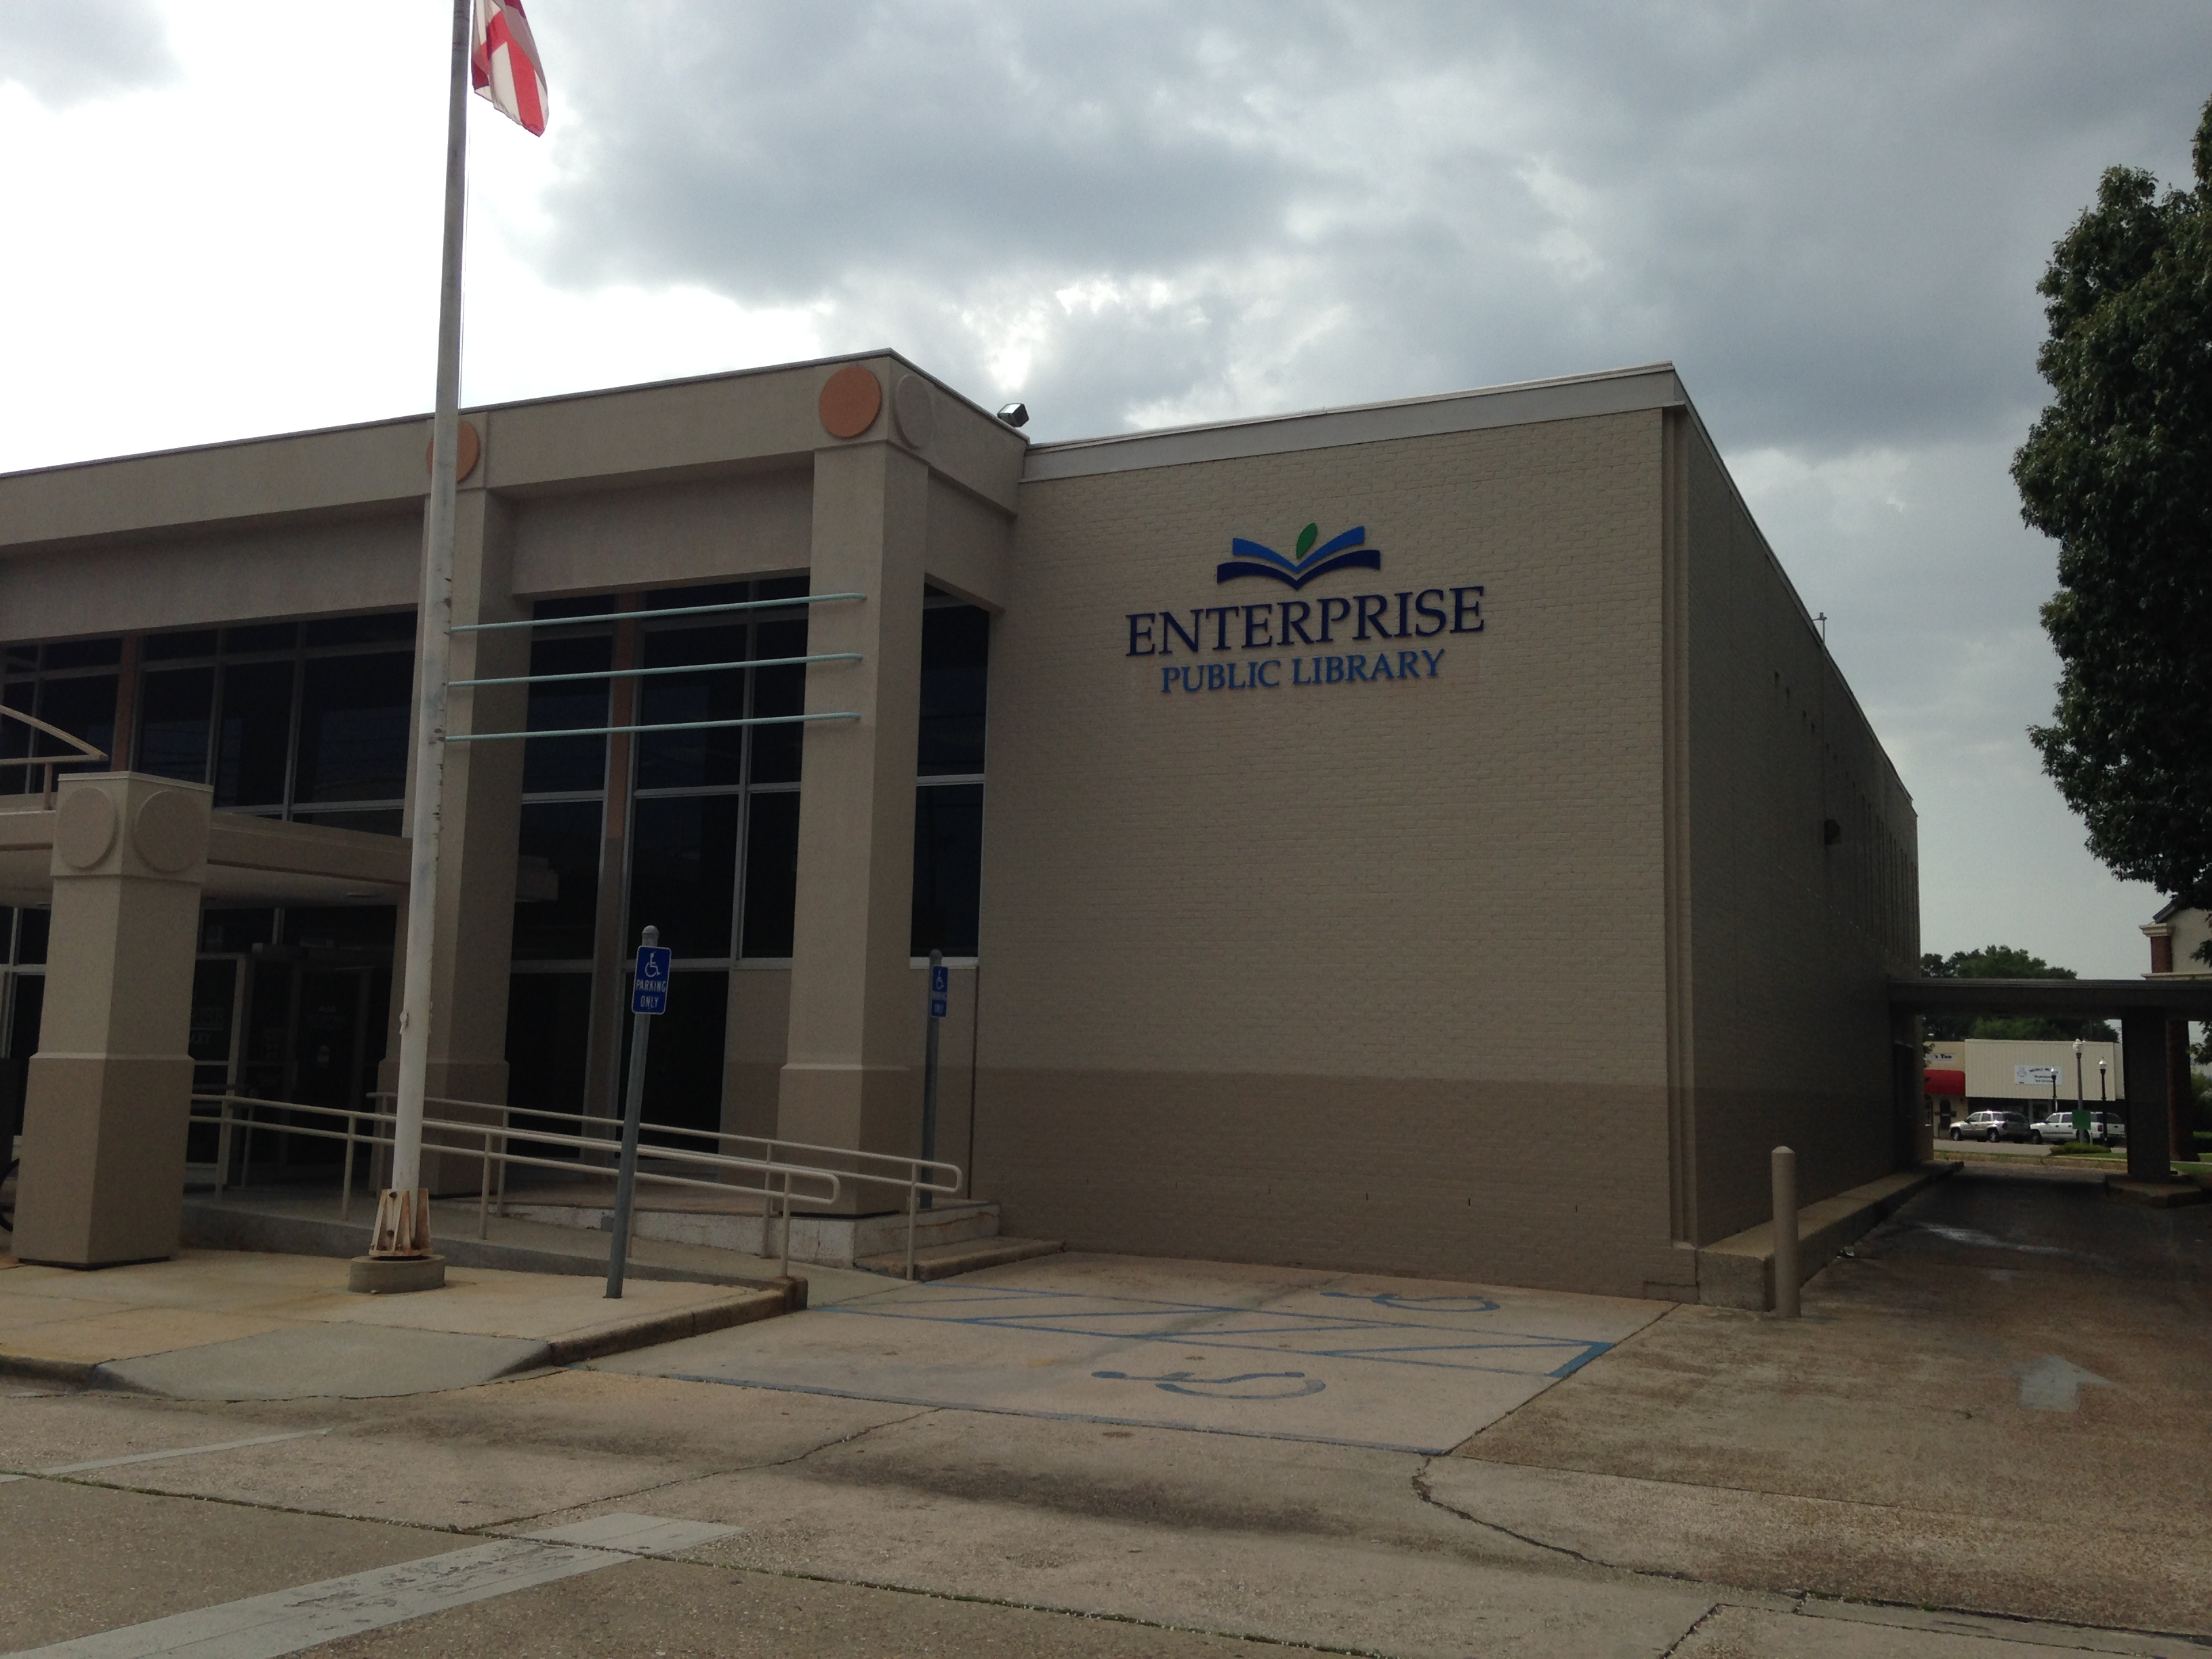 Enterprise Public Library